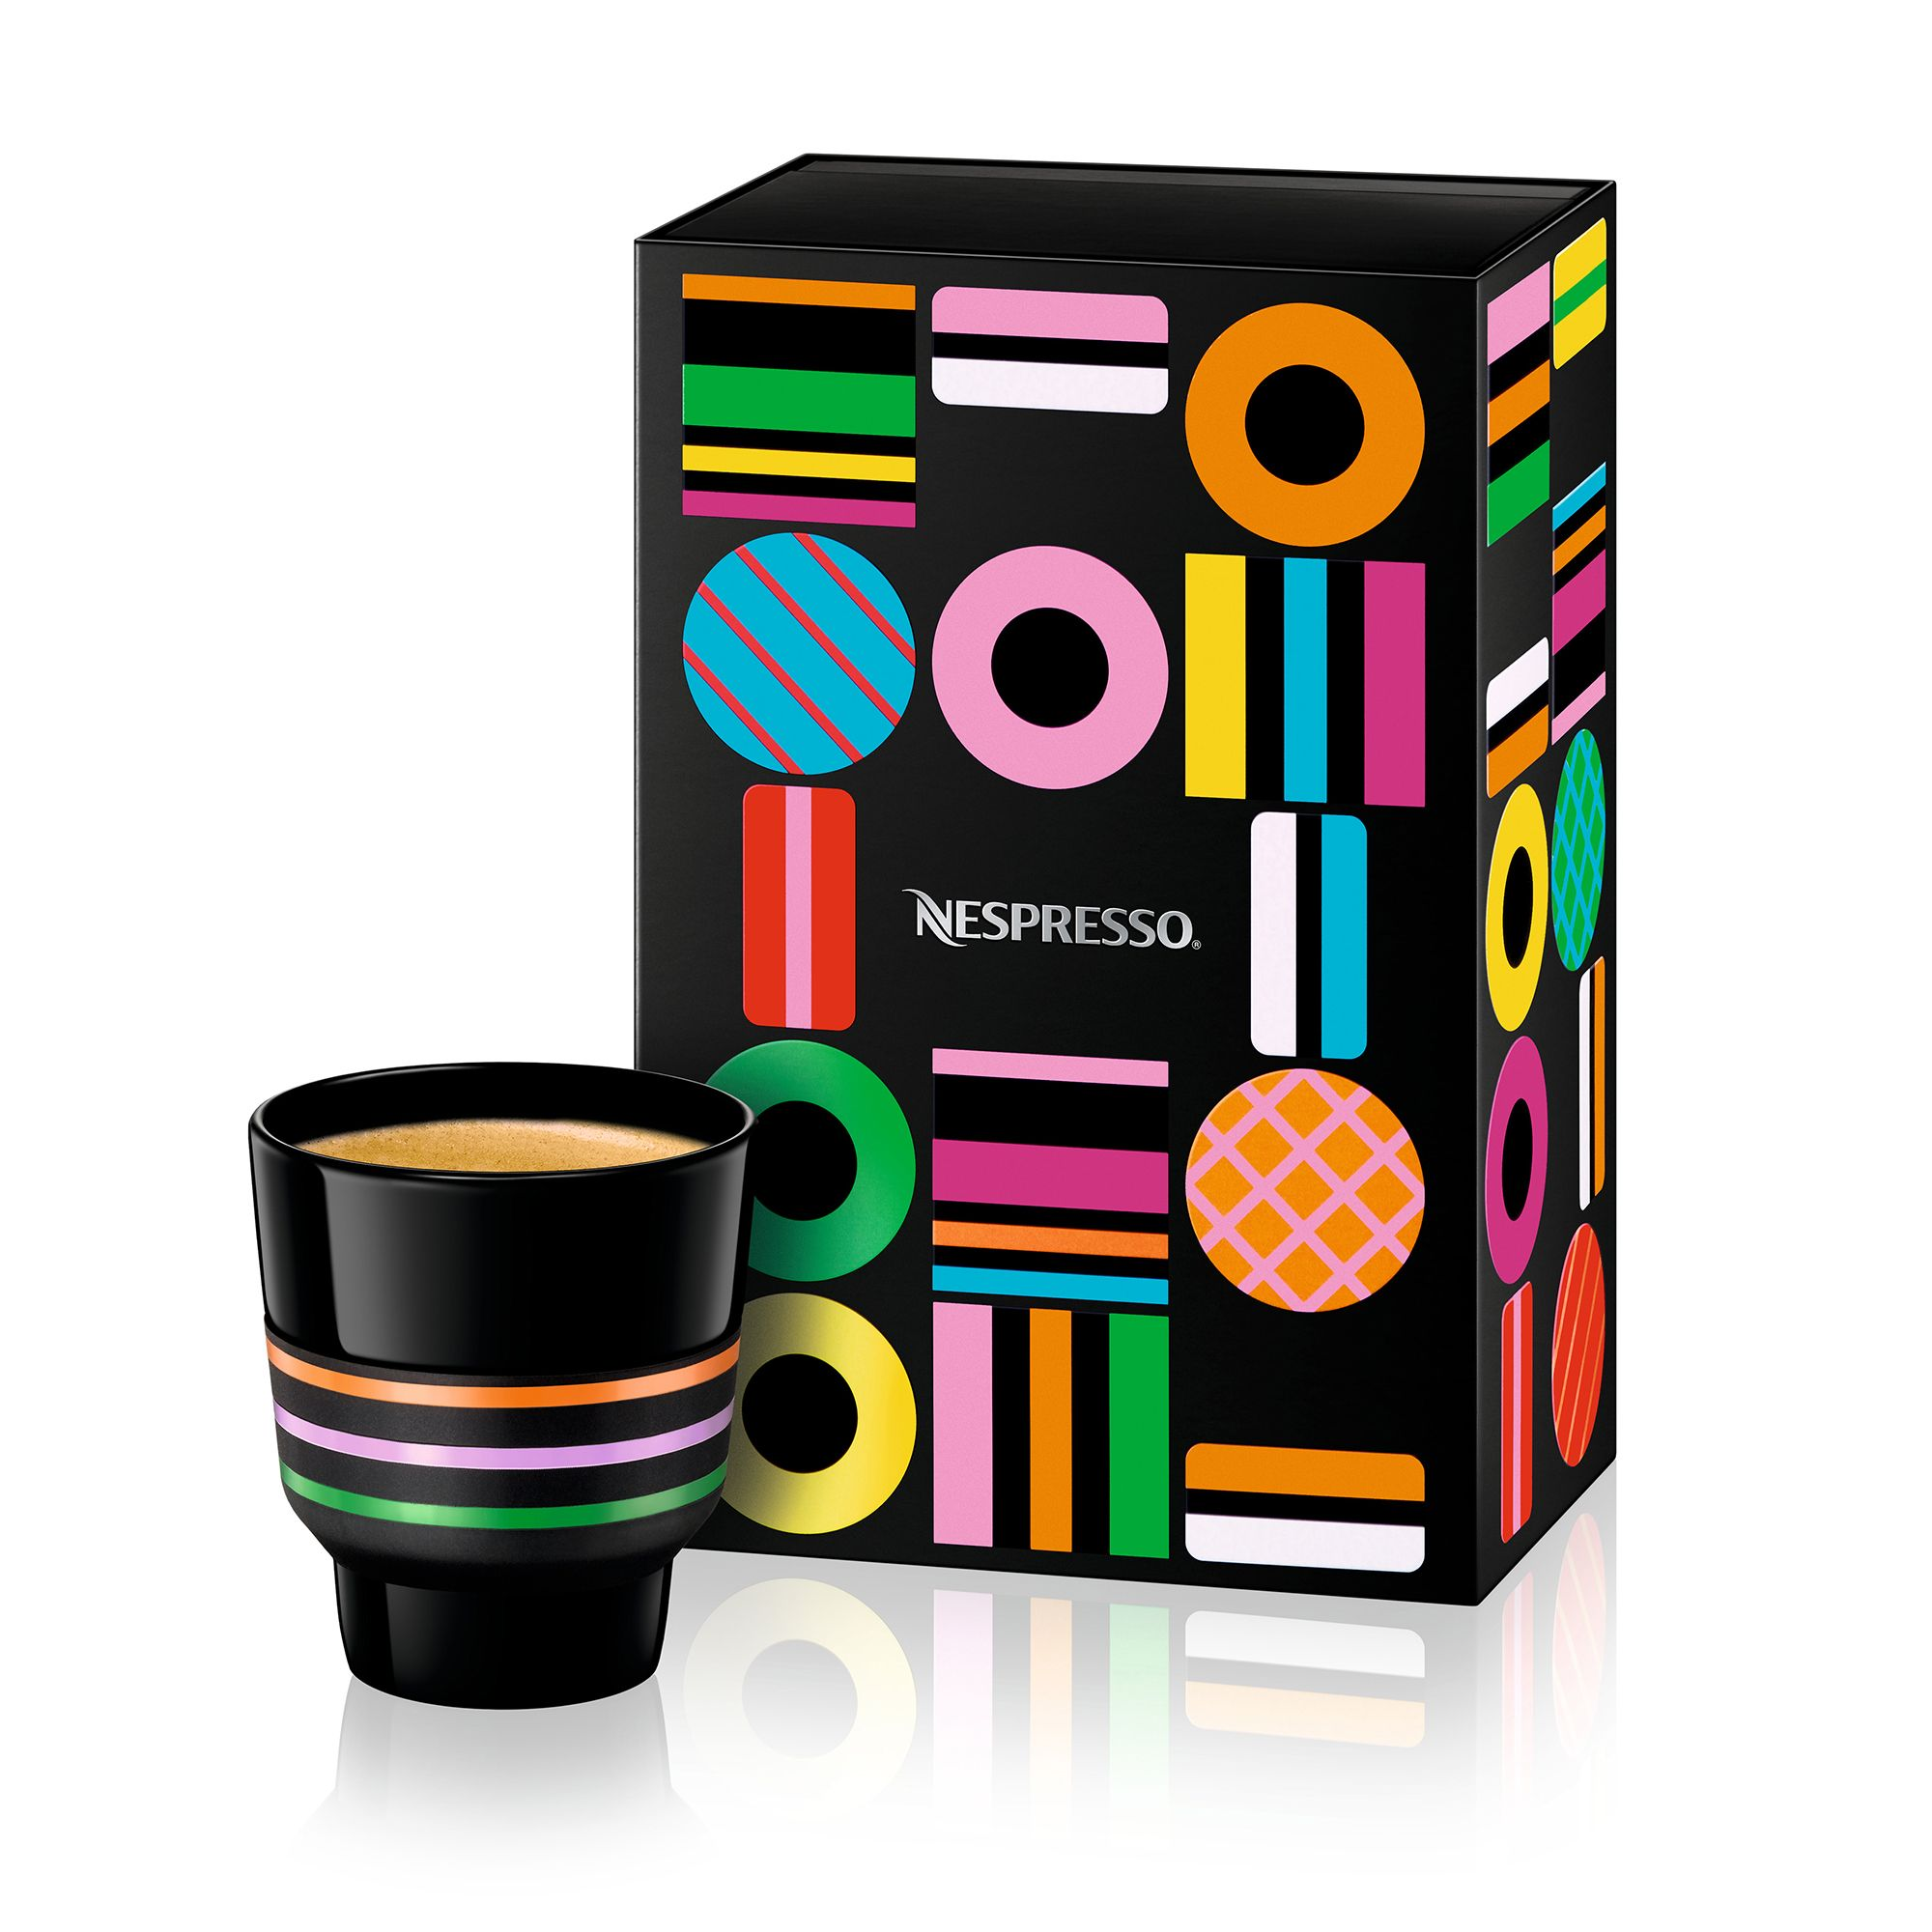 Nespresso Limited Edition Variations by Craig & Karl